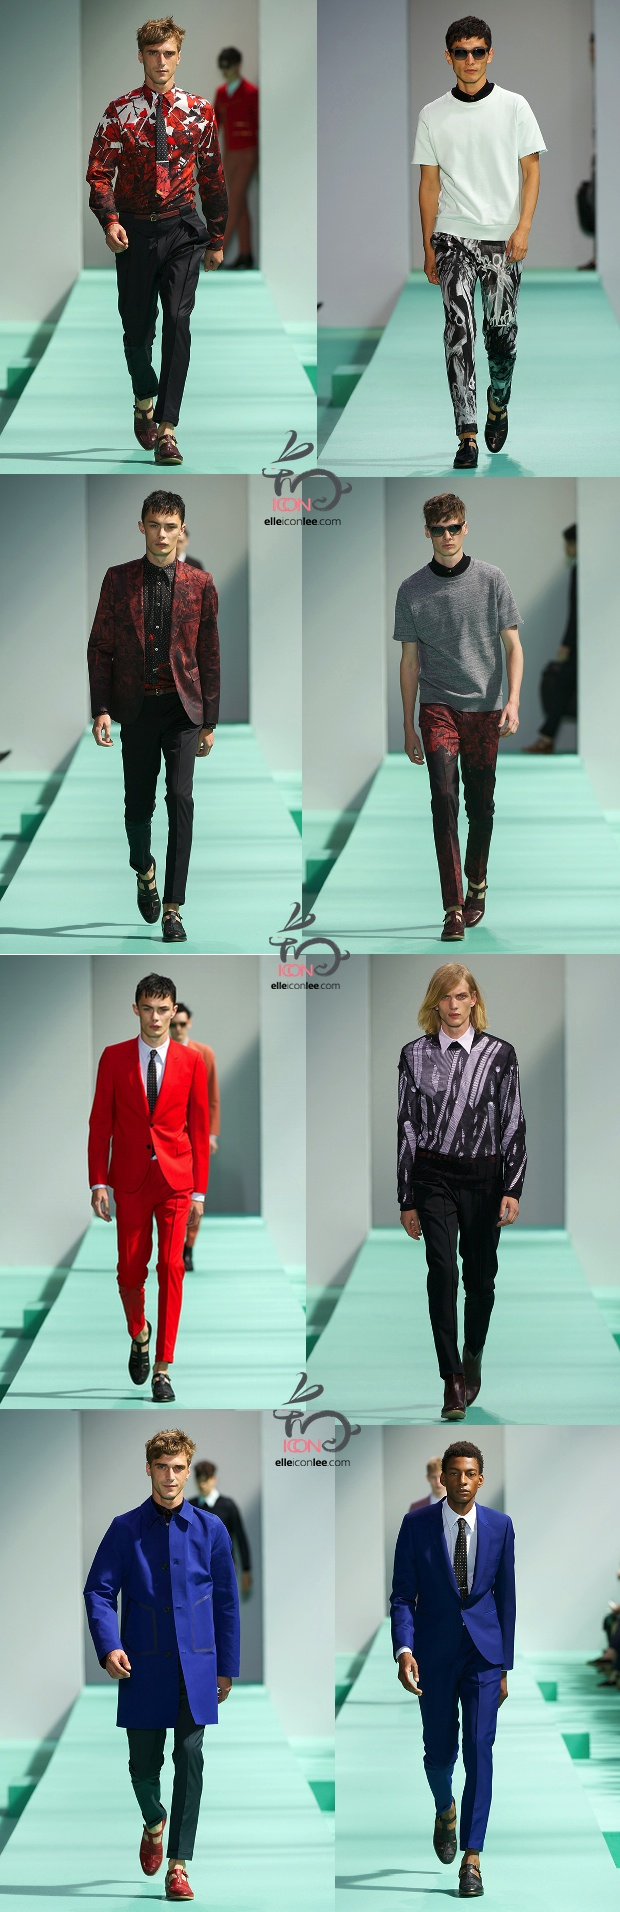 Paul-Smith-2013-spring-summer-men-runway